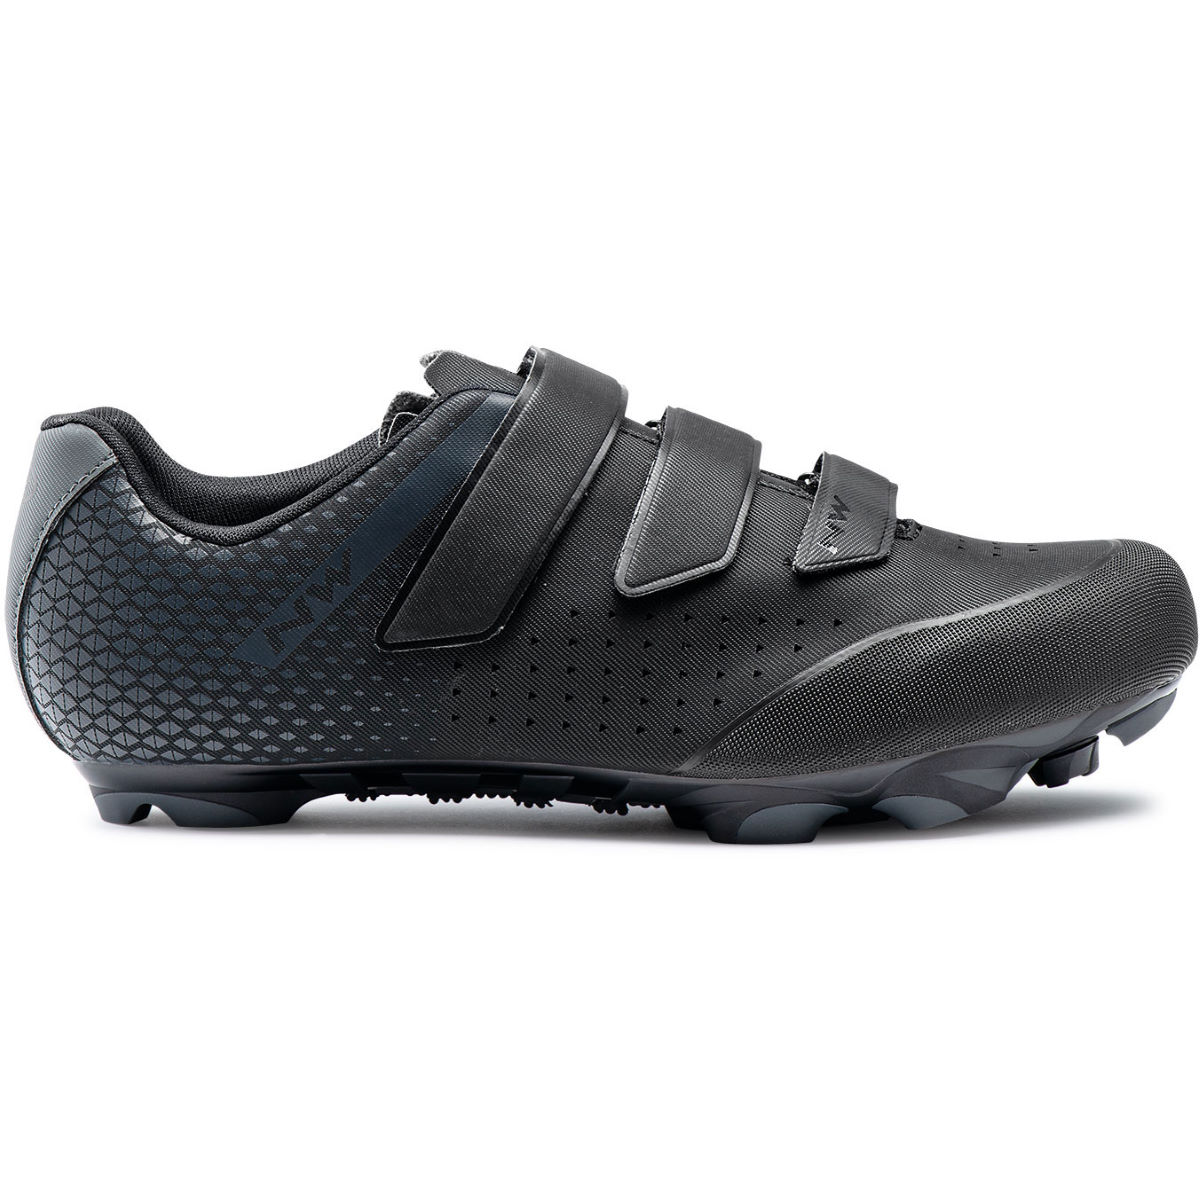 Northwave Origin 2 Mtb Shoes - 43 Black/anthracite  Cycling Shoes